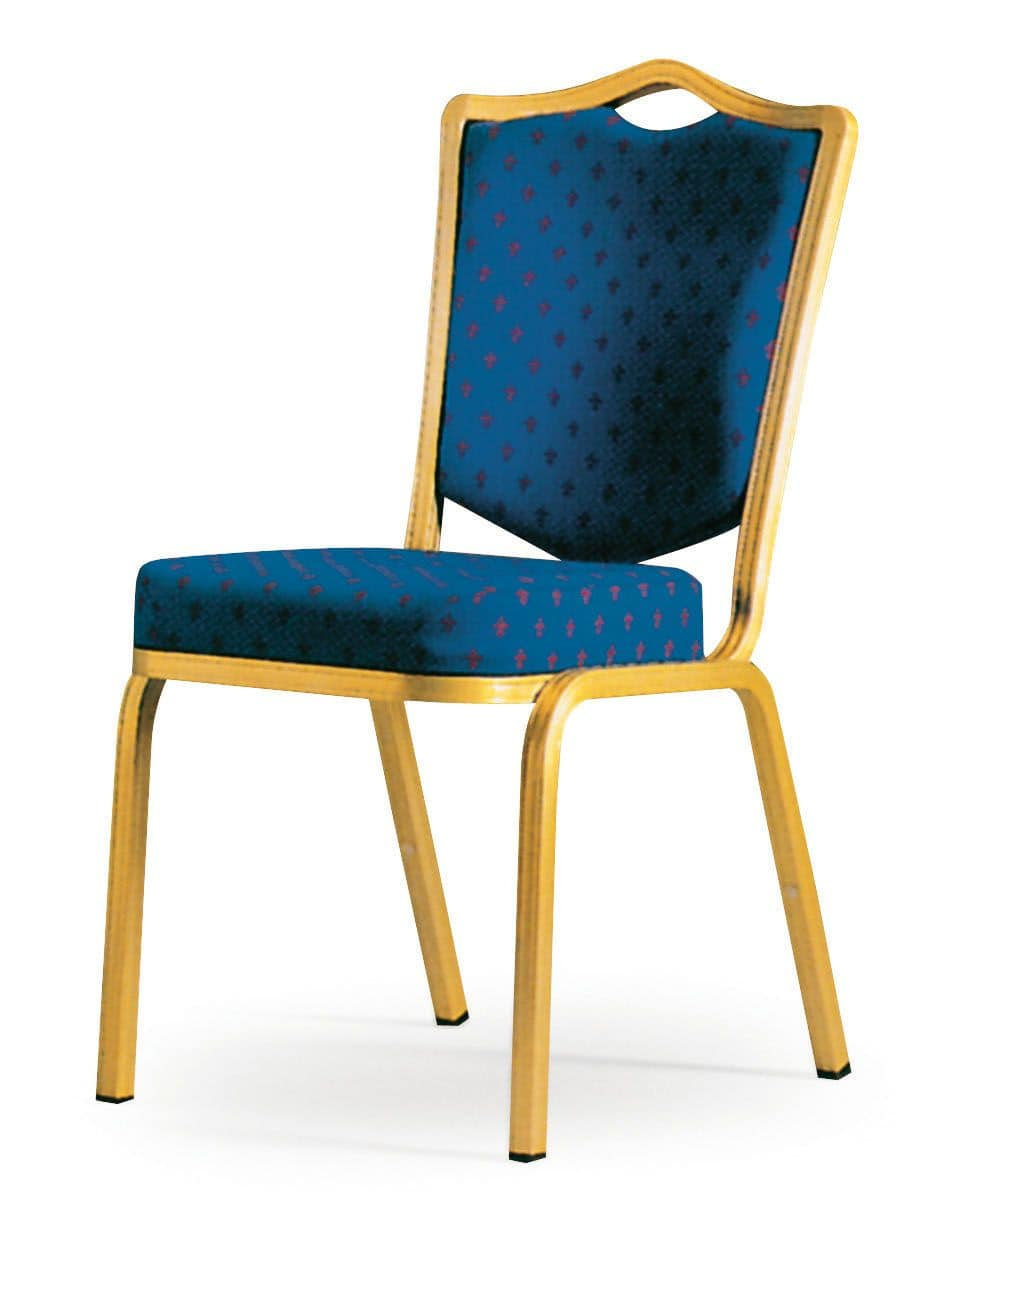 Siena-Allday 62/4E, Chair with fire retardant padding, light and stackable